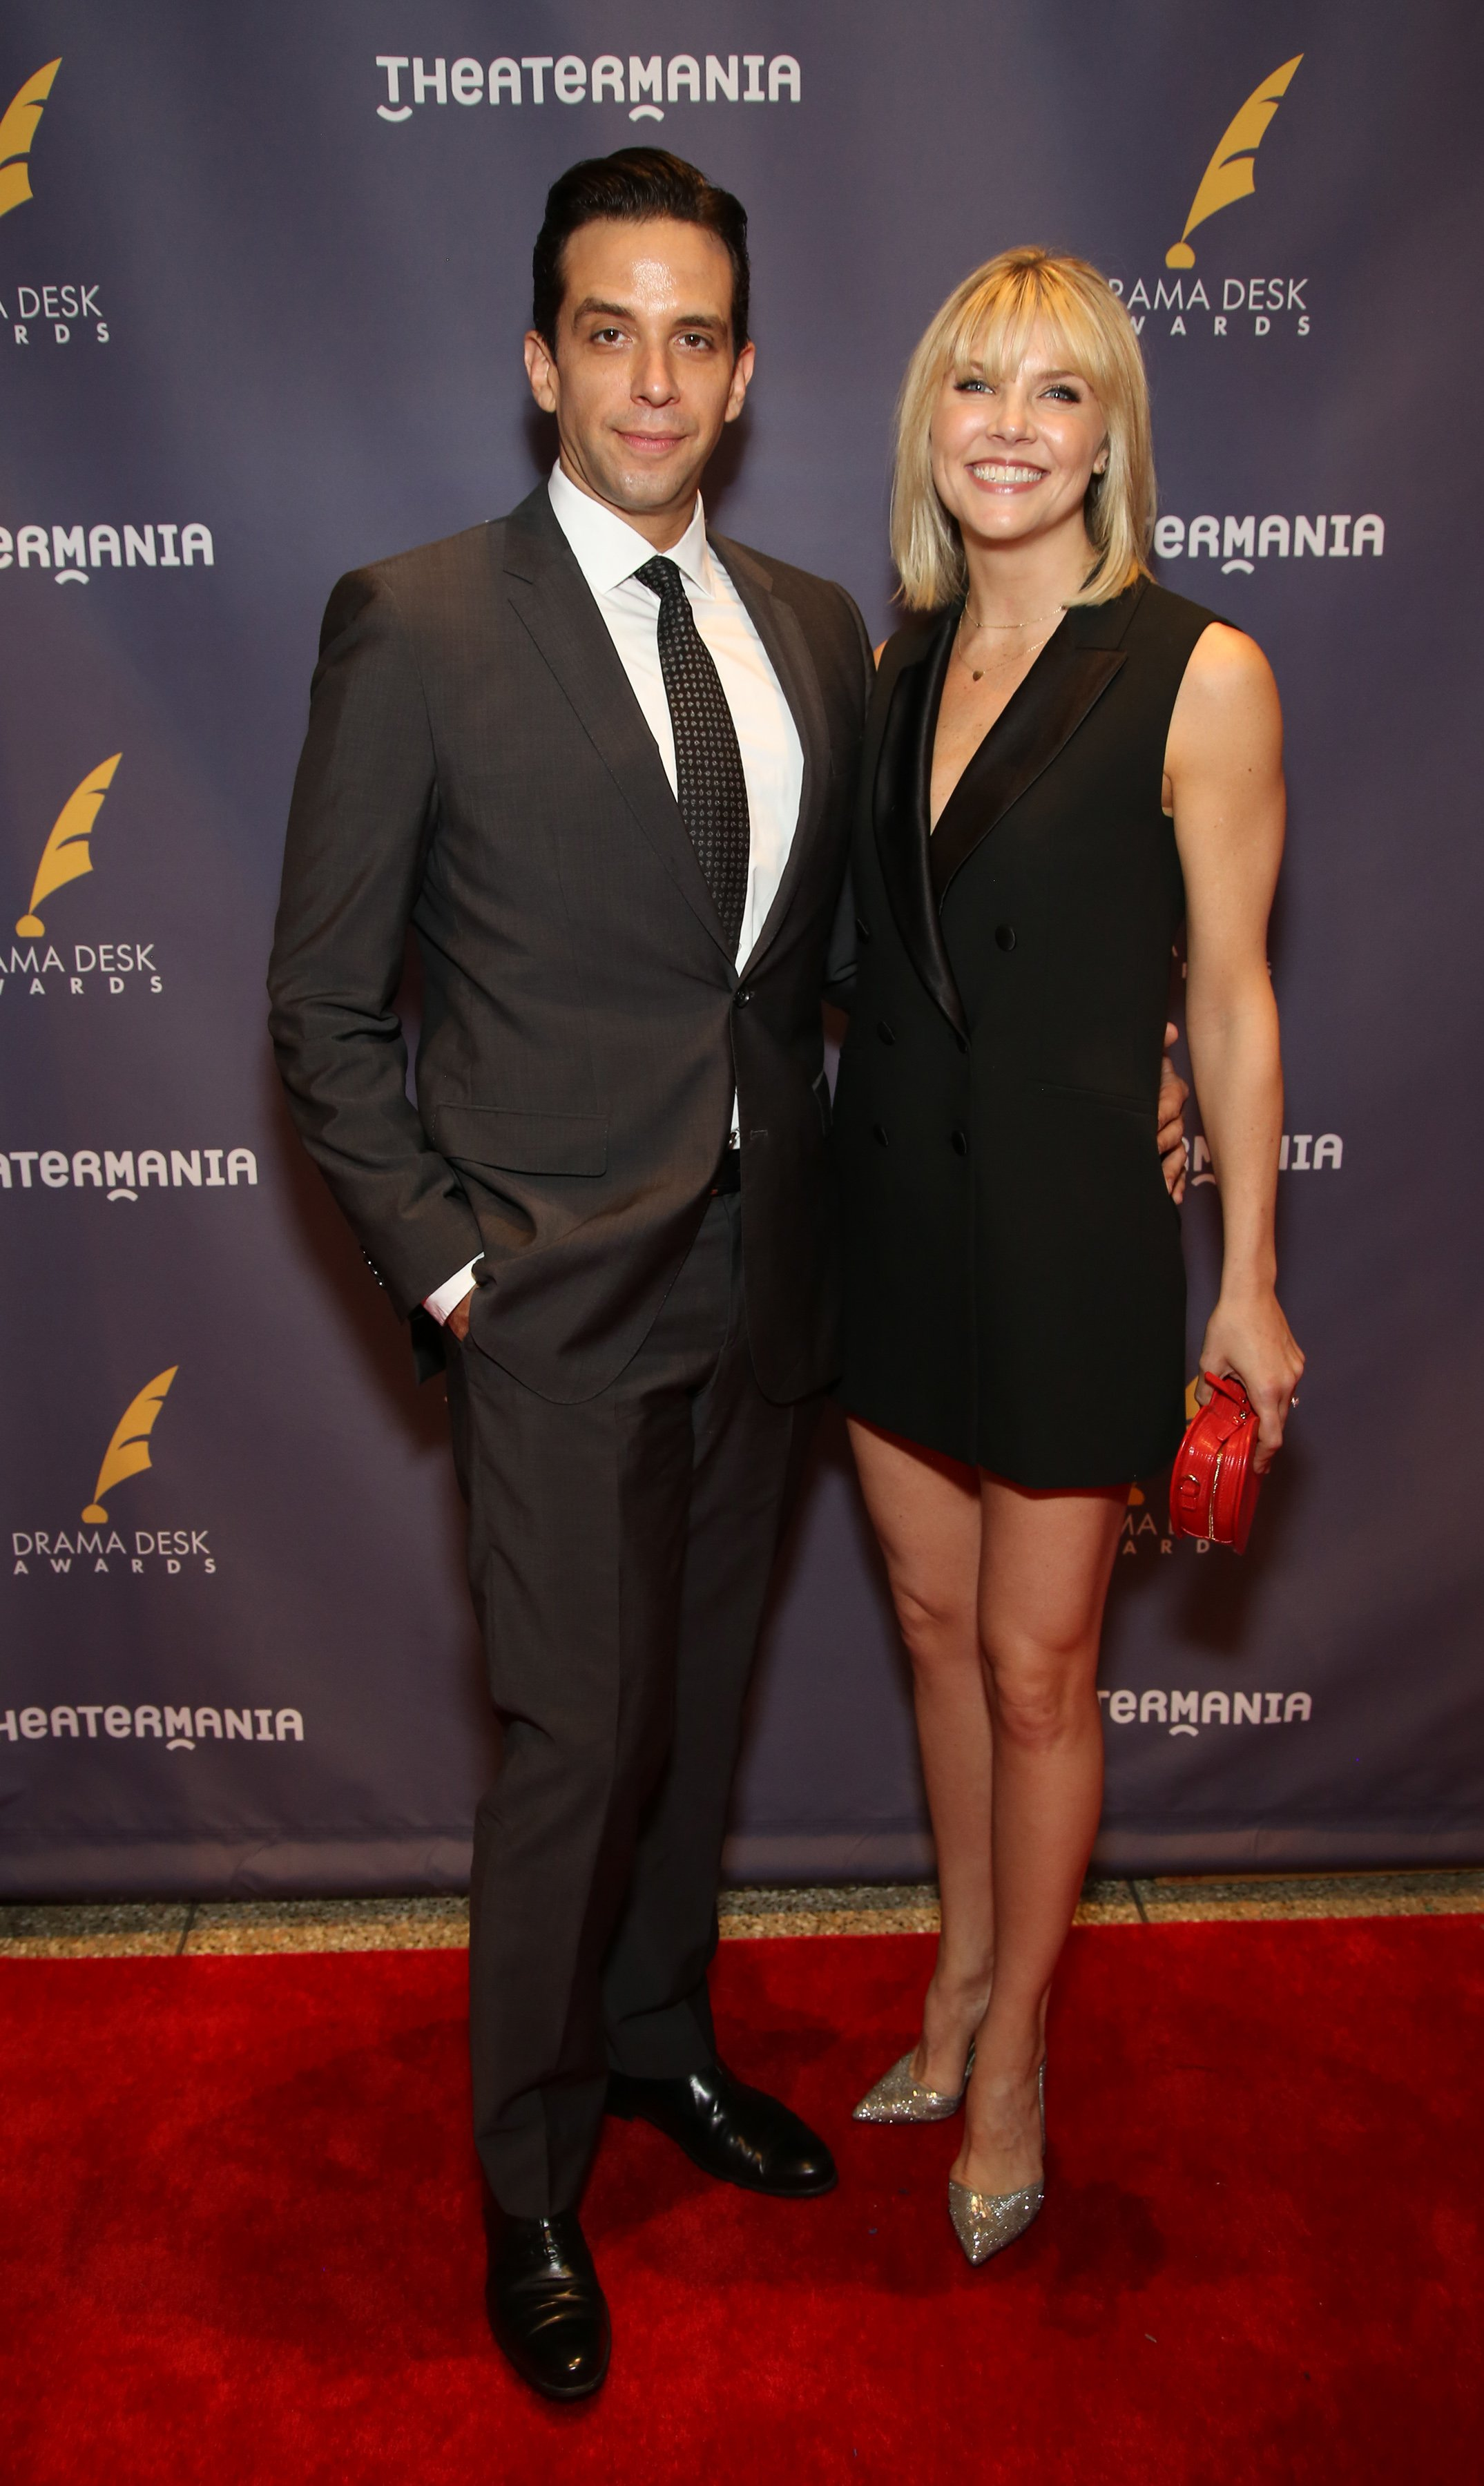 Nick Cordero and Amanda Kloots attend the 2017 Drama Desk Awards on June 4, 2017, in New York City. | Source: Getty Images.